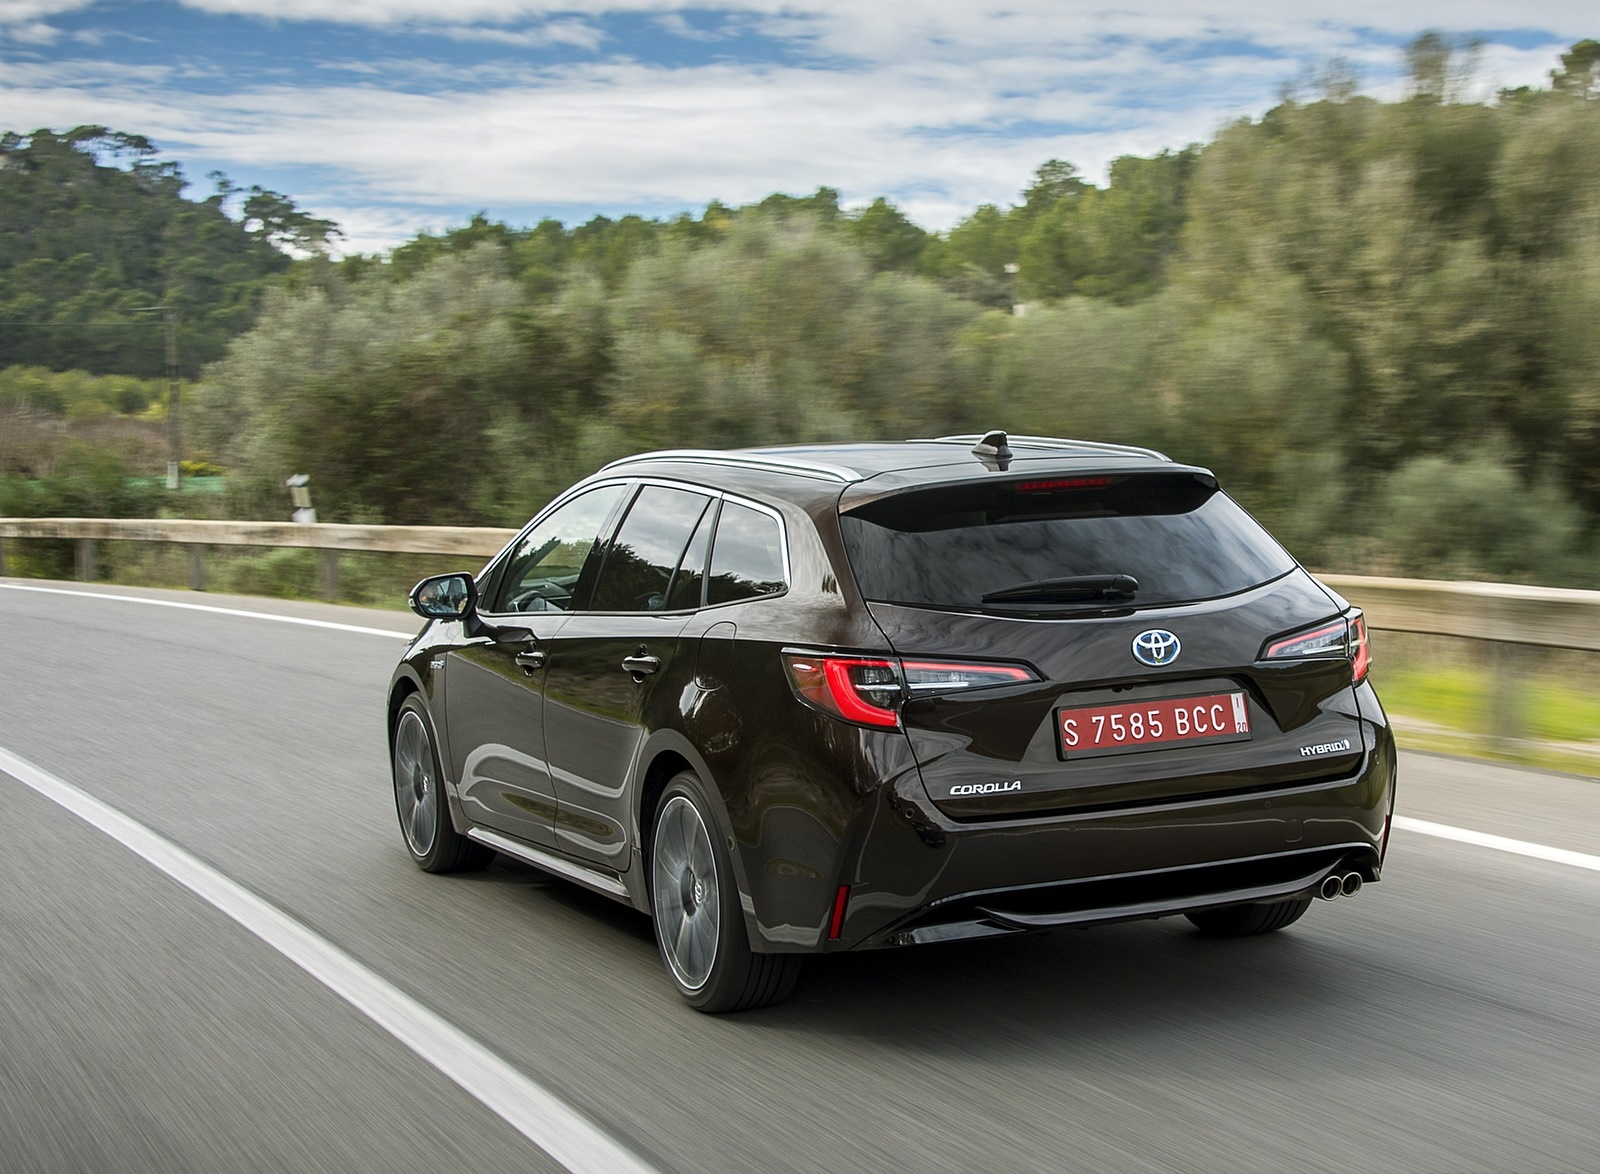 2019 Toyota Corolla Touring Sports 2.0L Brown (EU-Spec) Rear Three-Quarter Wallpapers (10)